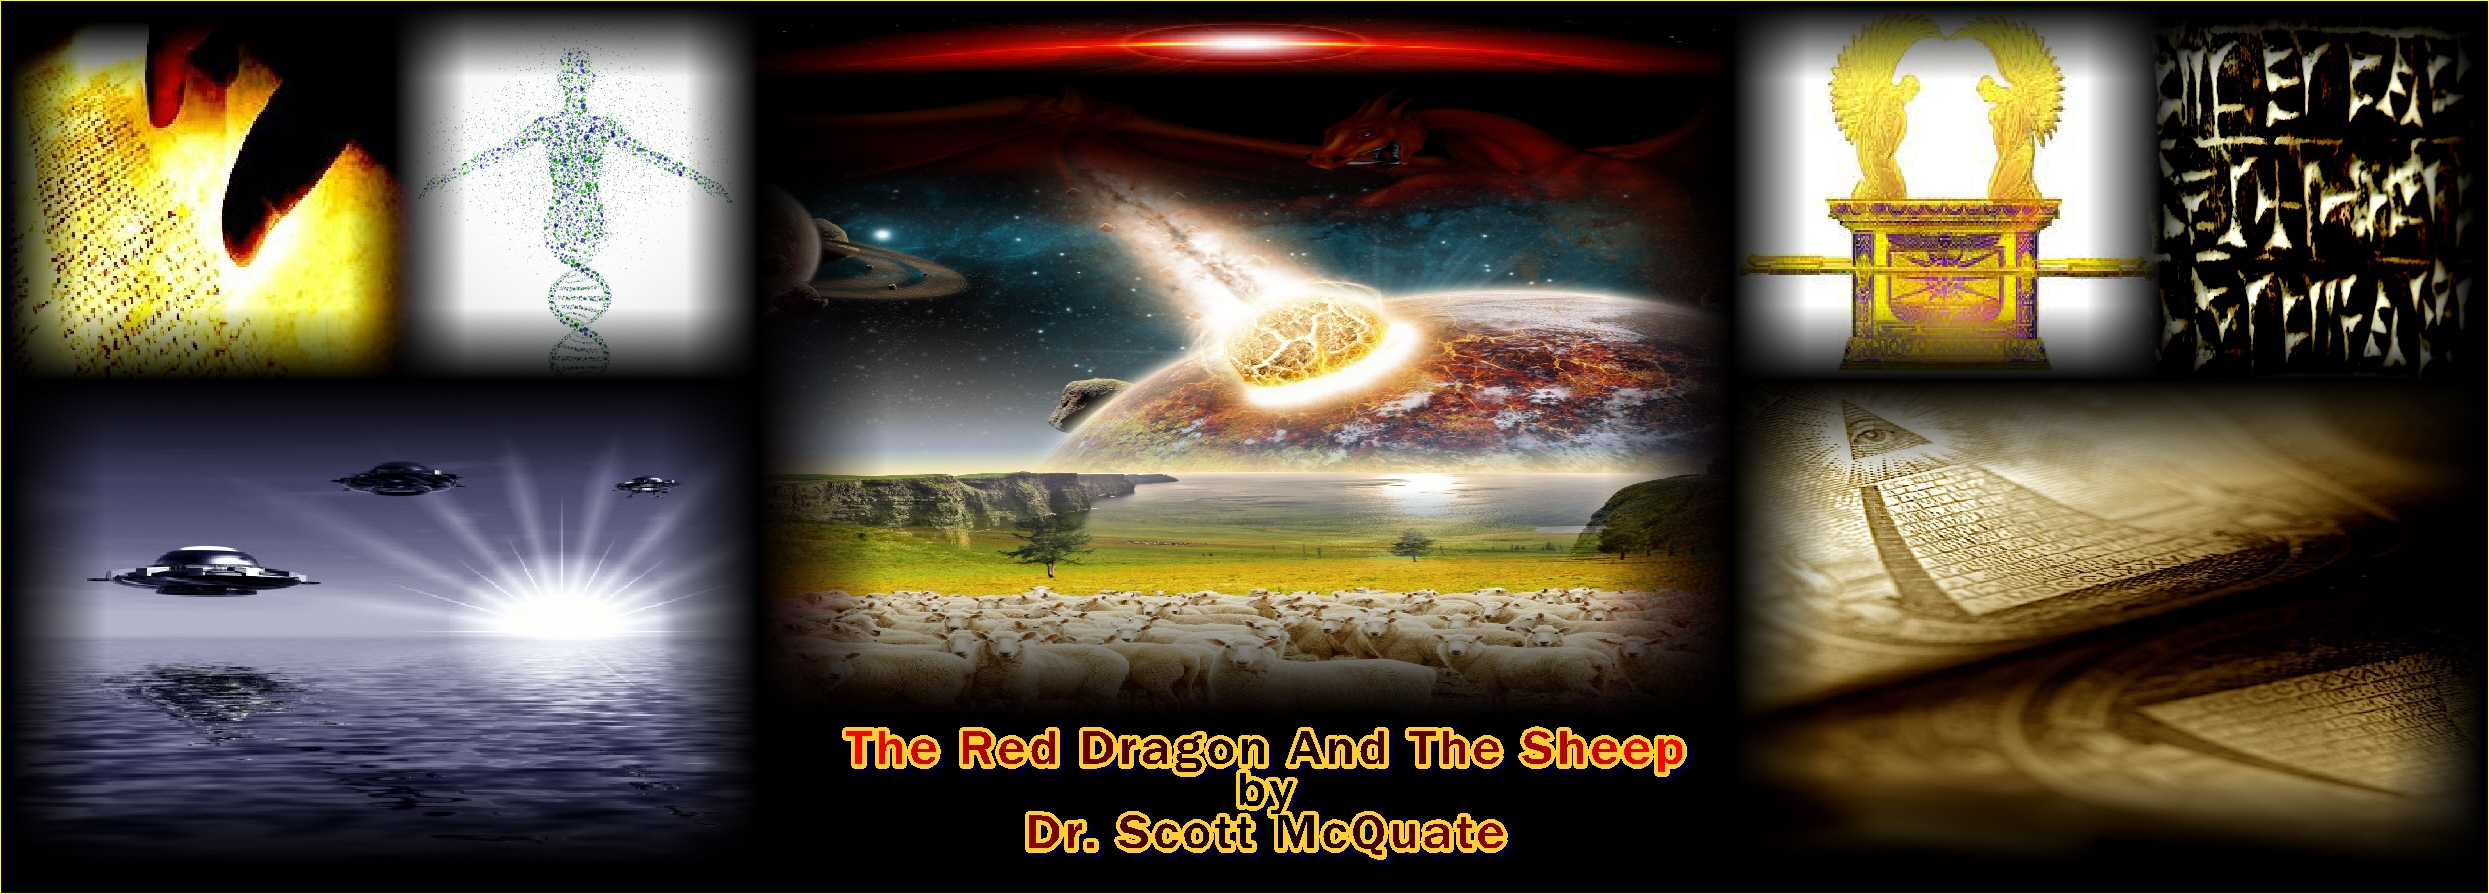 The Red Dragon And The Sheep By Dr. Scott McQuate